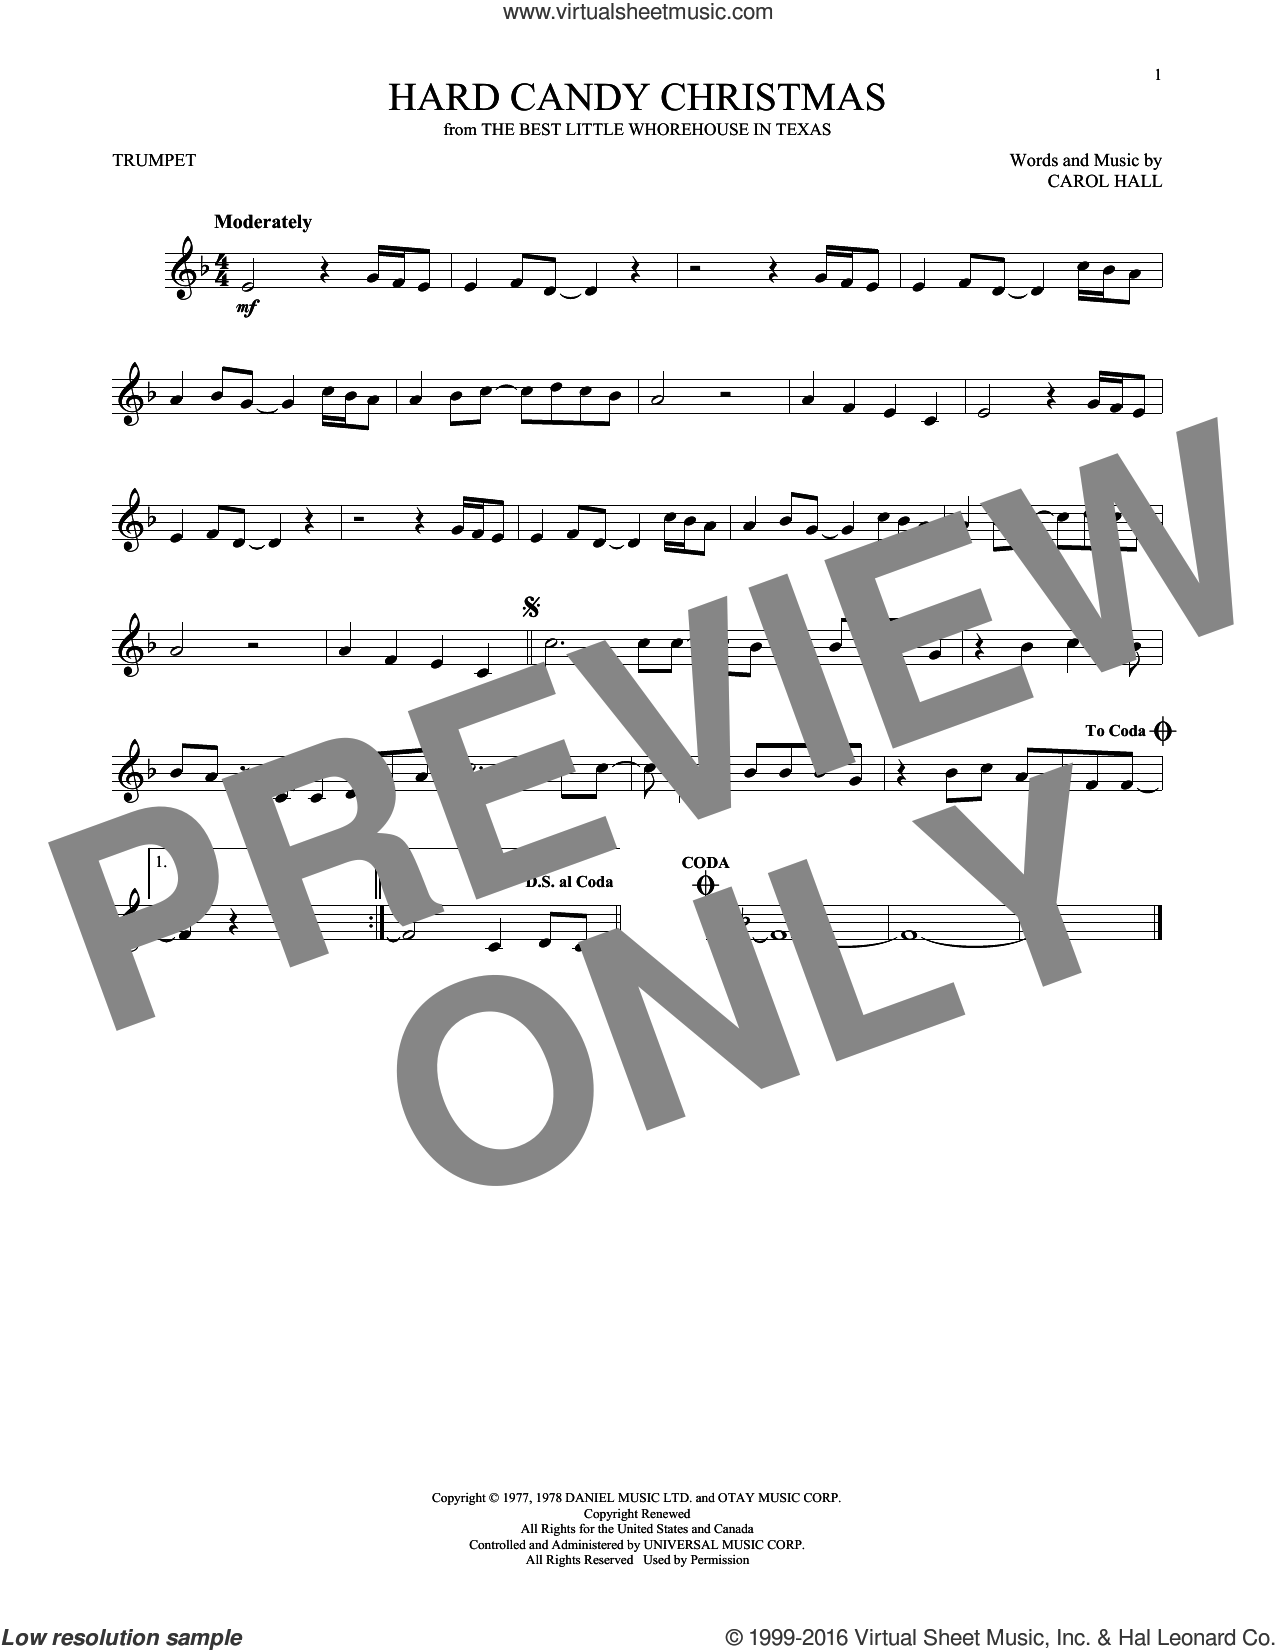 Hard Candy Christmas sheet music for trumpet solo by Dolly Parton and Carol Hall, intermediate skill level